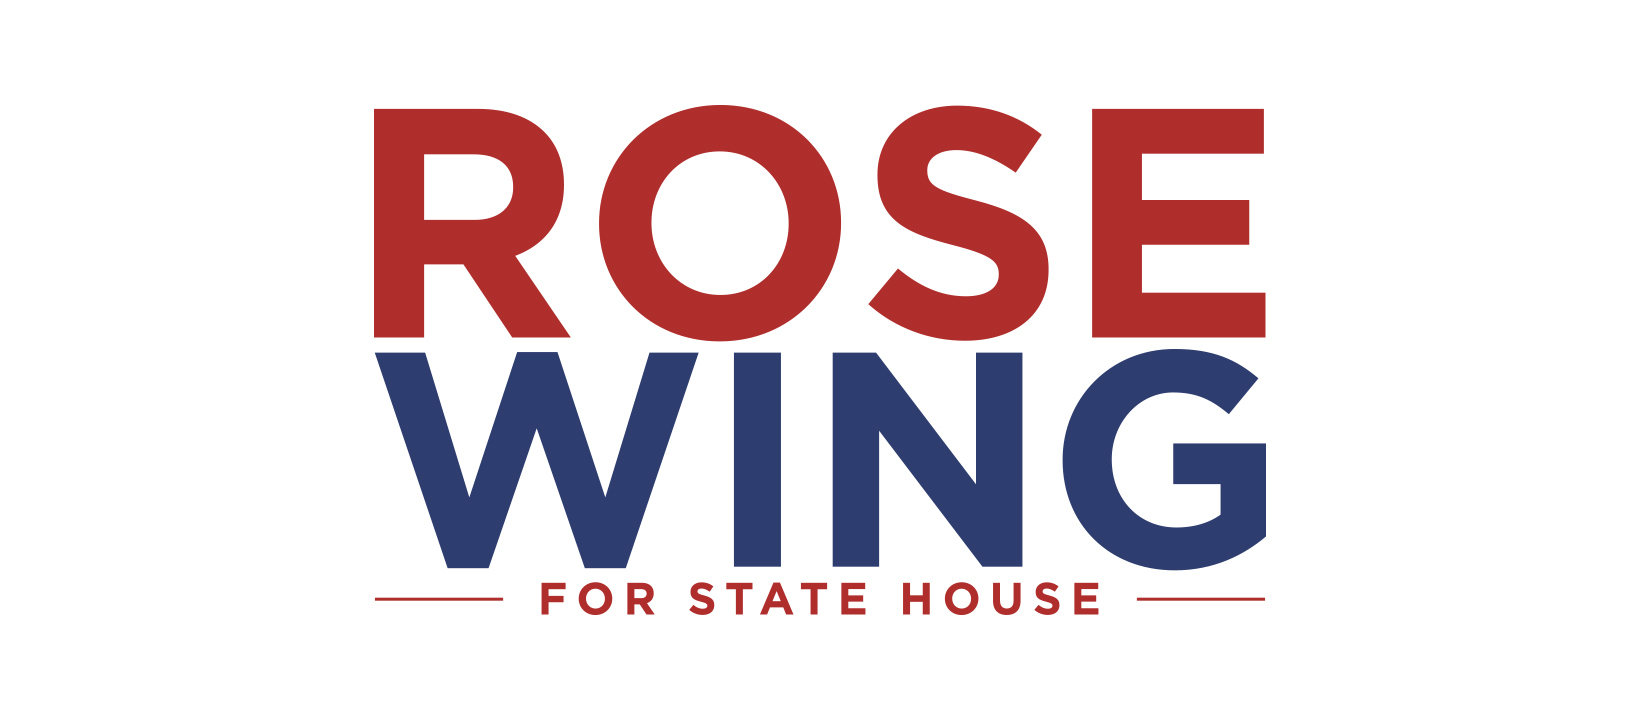 Rose Wing for Georgia: General Fund